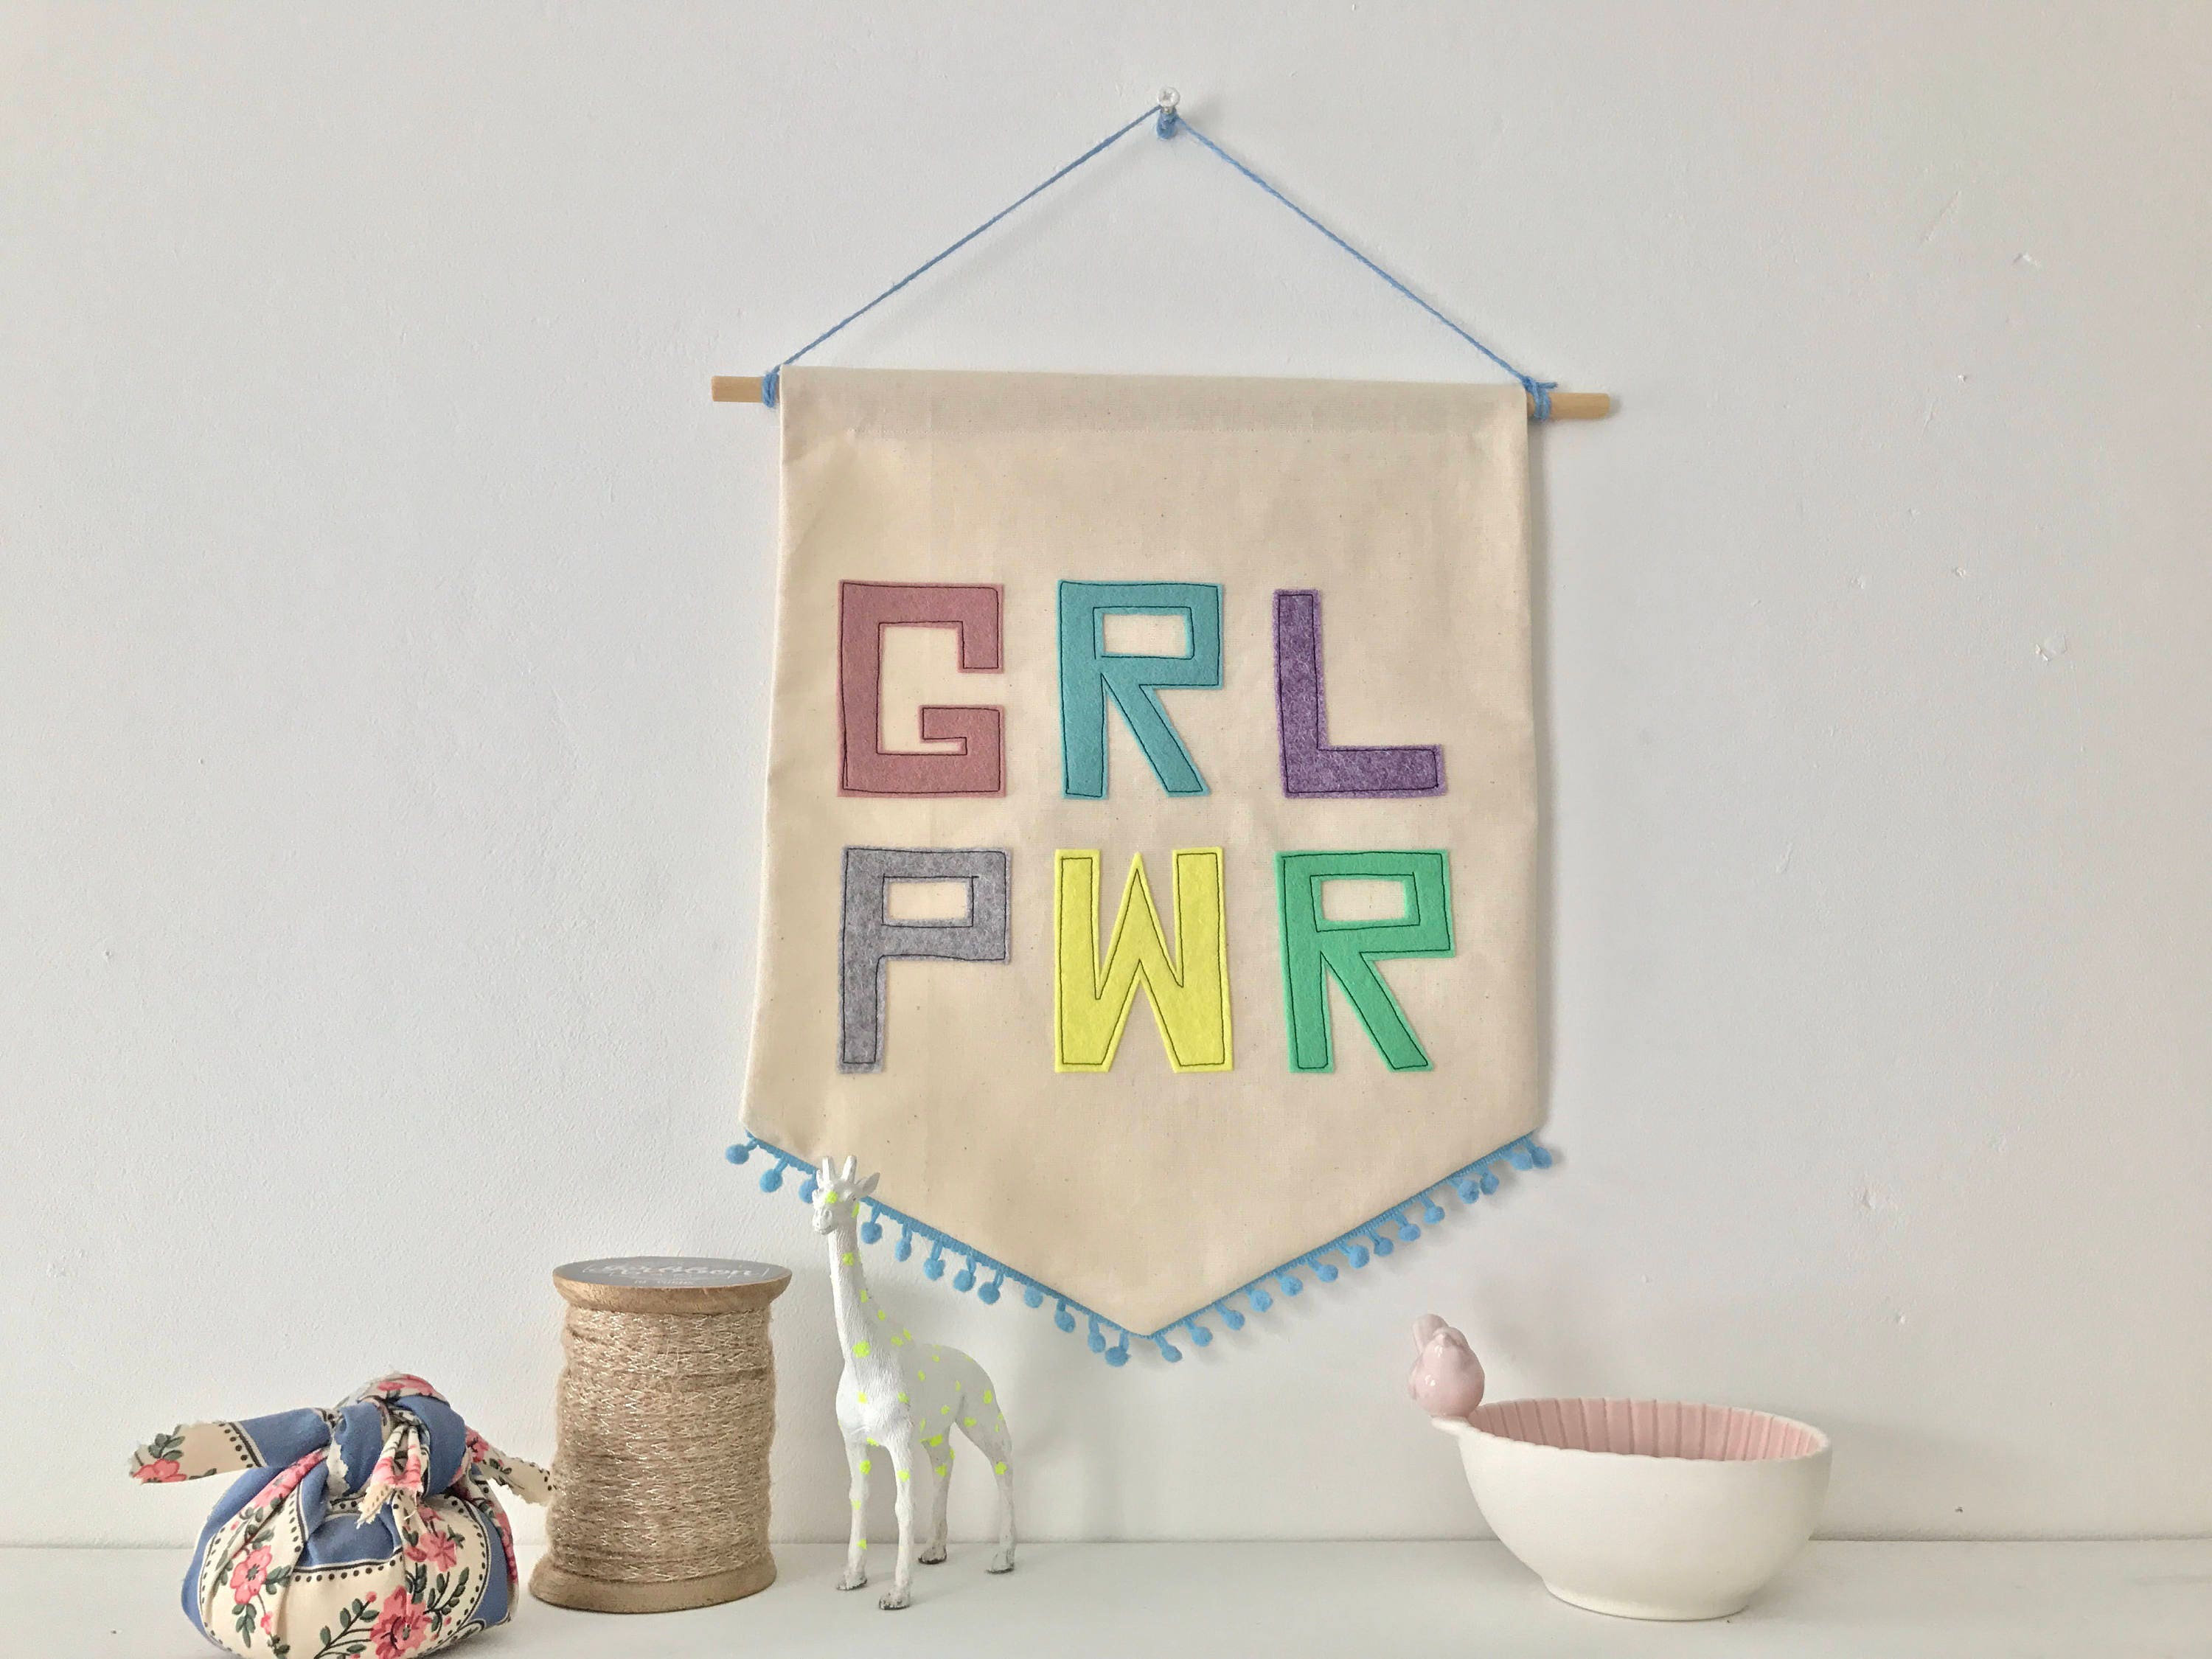 Girl Power Quotes Handmade Wall Banner  Girl Power  Inspirational Quotes